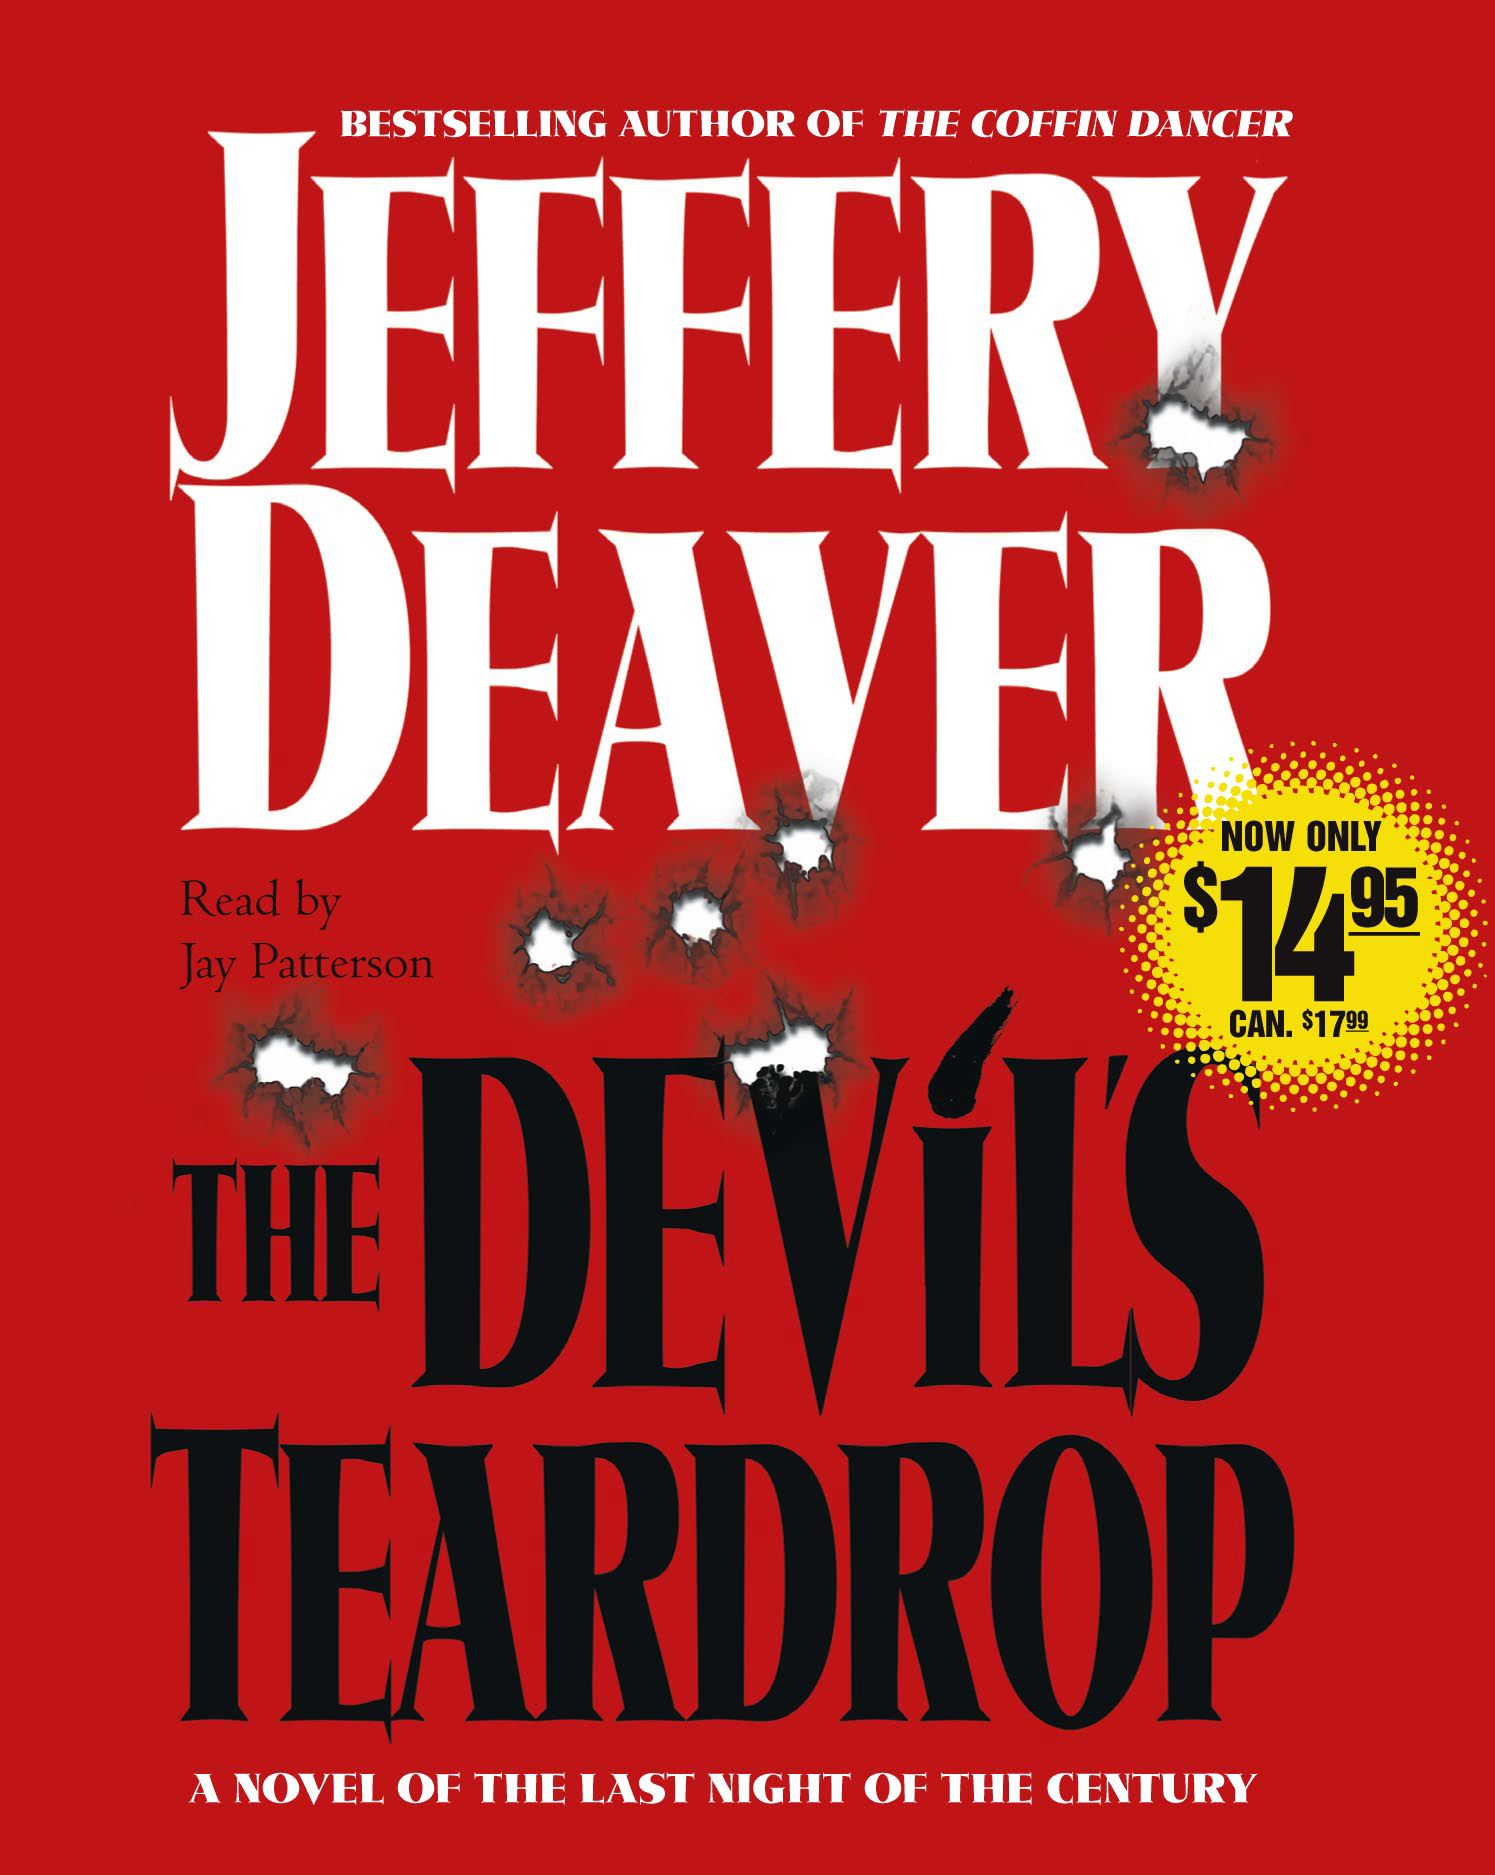 Devils-teardrop-9780743561037_hr